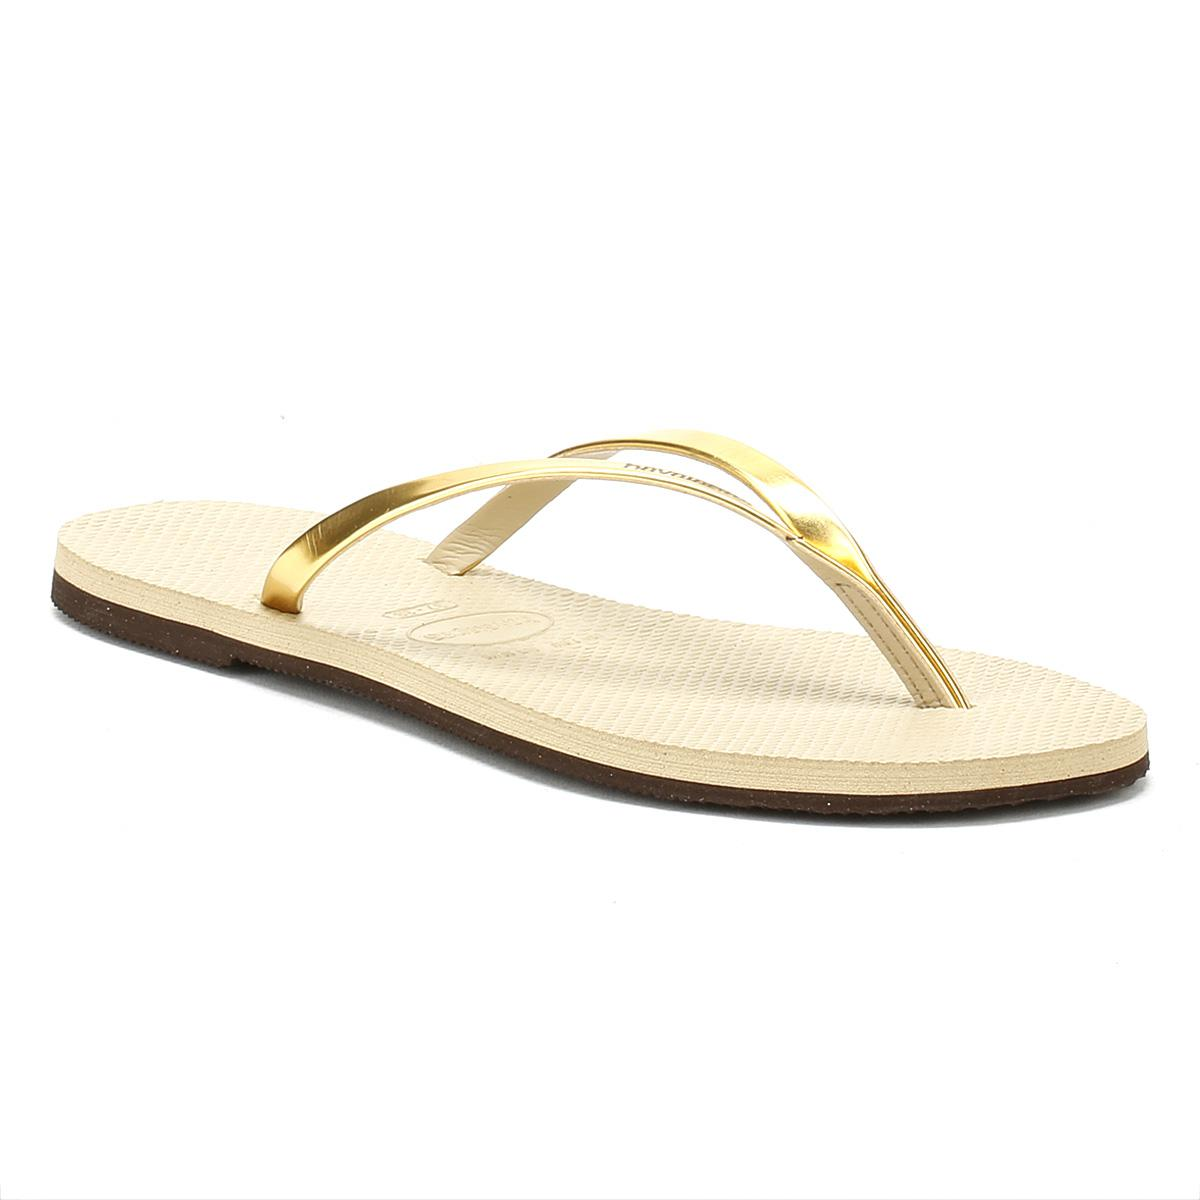 Metallic gold 'You' flip flops for sale very cheap largest supplier sale online clearance for cheap outlet ebay big discount cheap online Y4ARehg